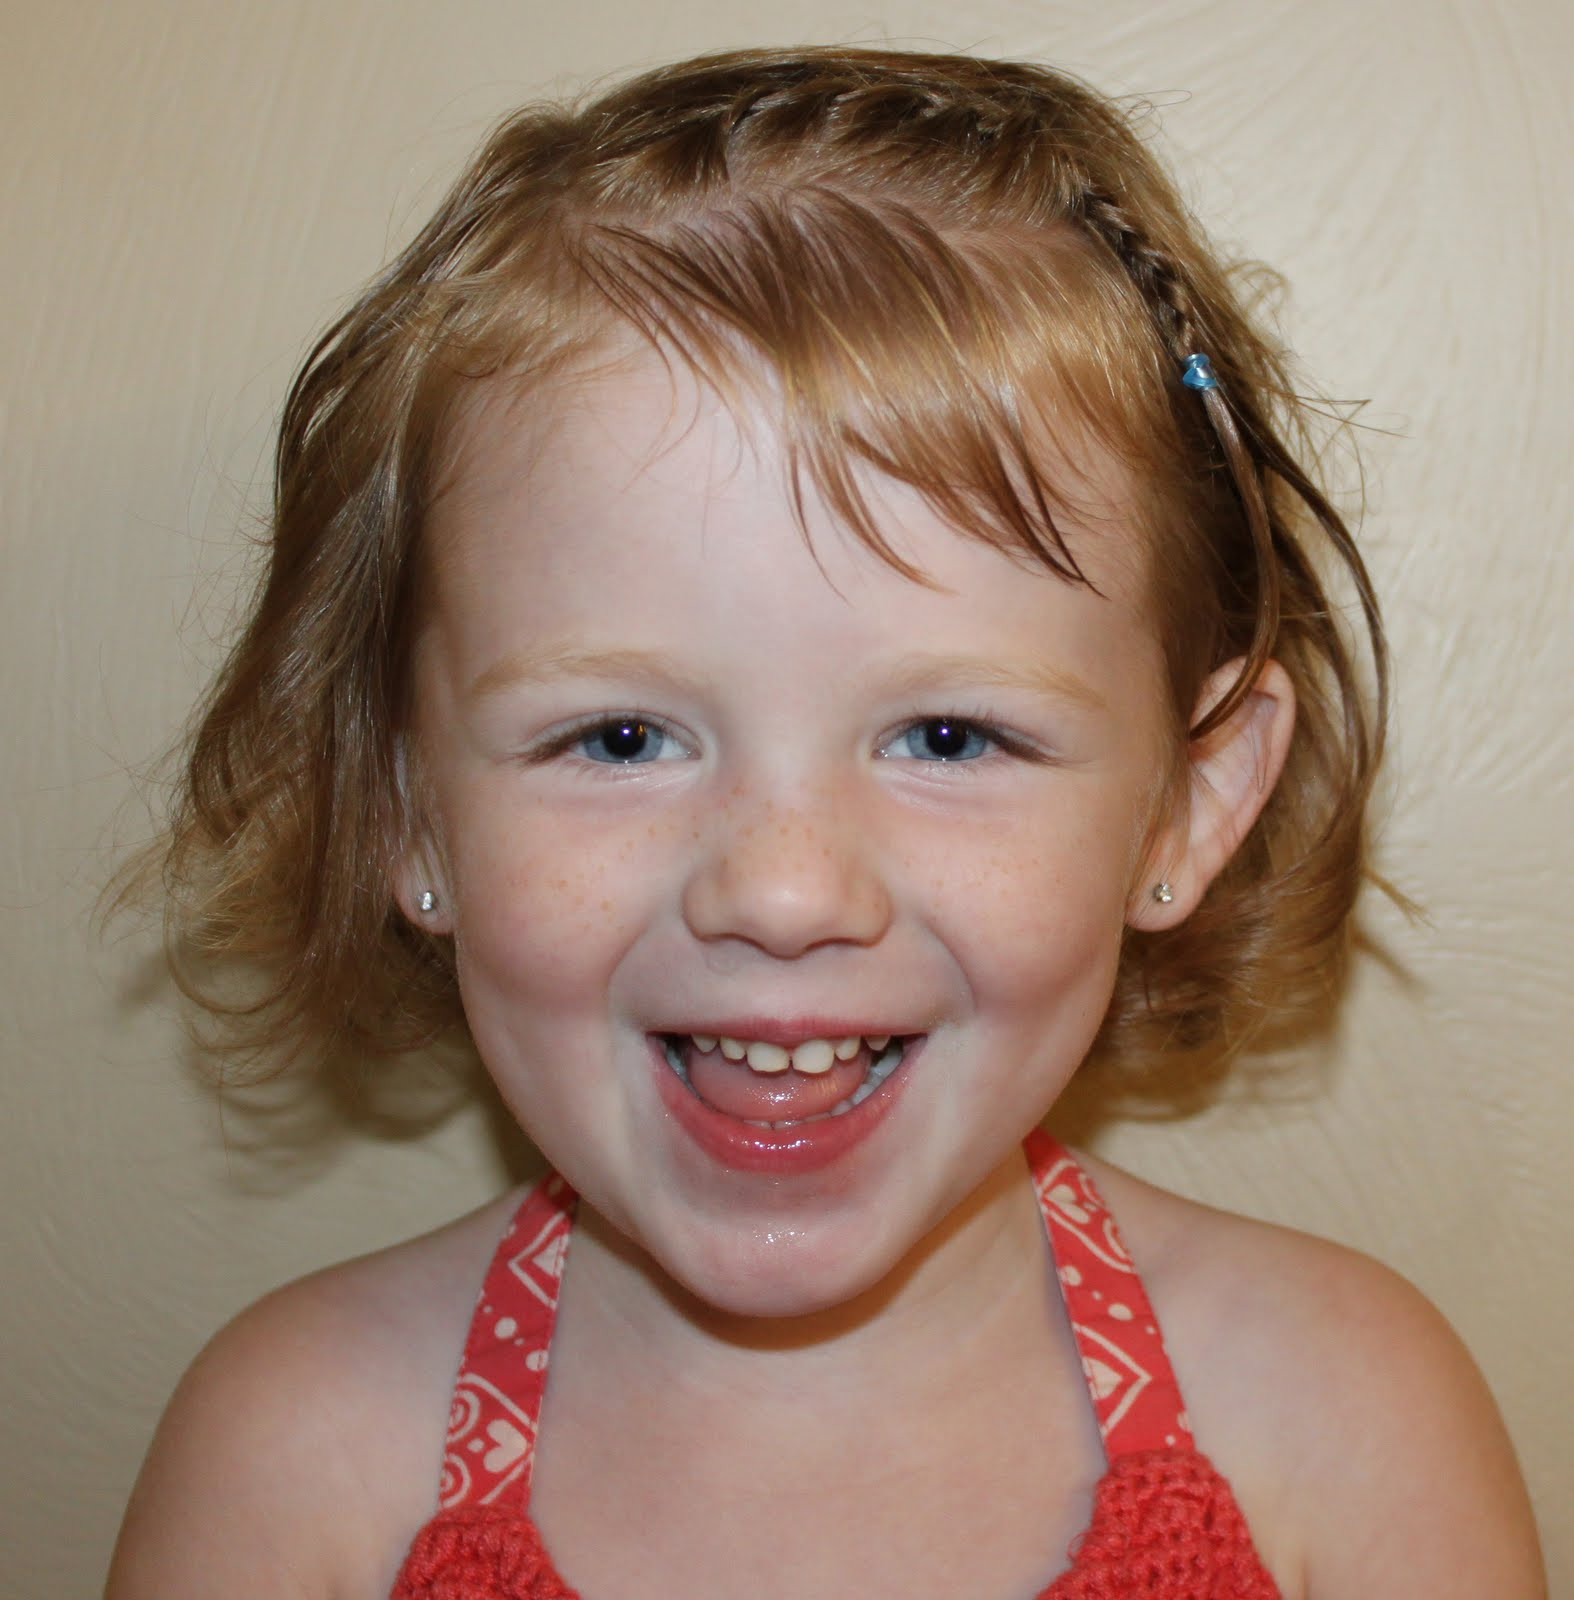 Hairstyles For Toddler Girls  Hairstyles for Girls The Wright Hair Toddler French Braid